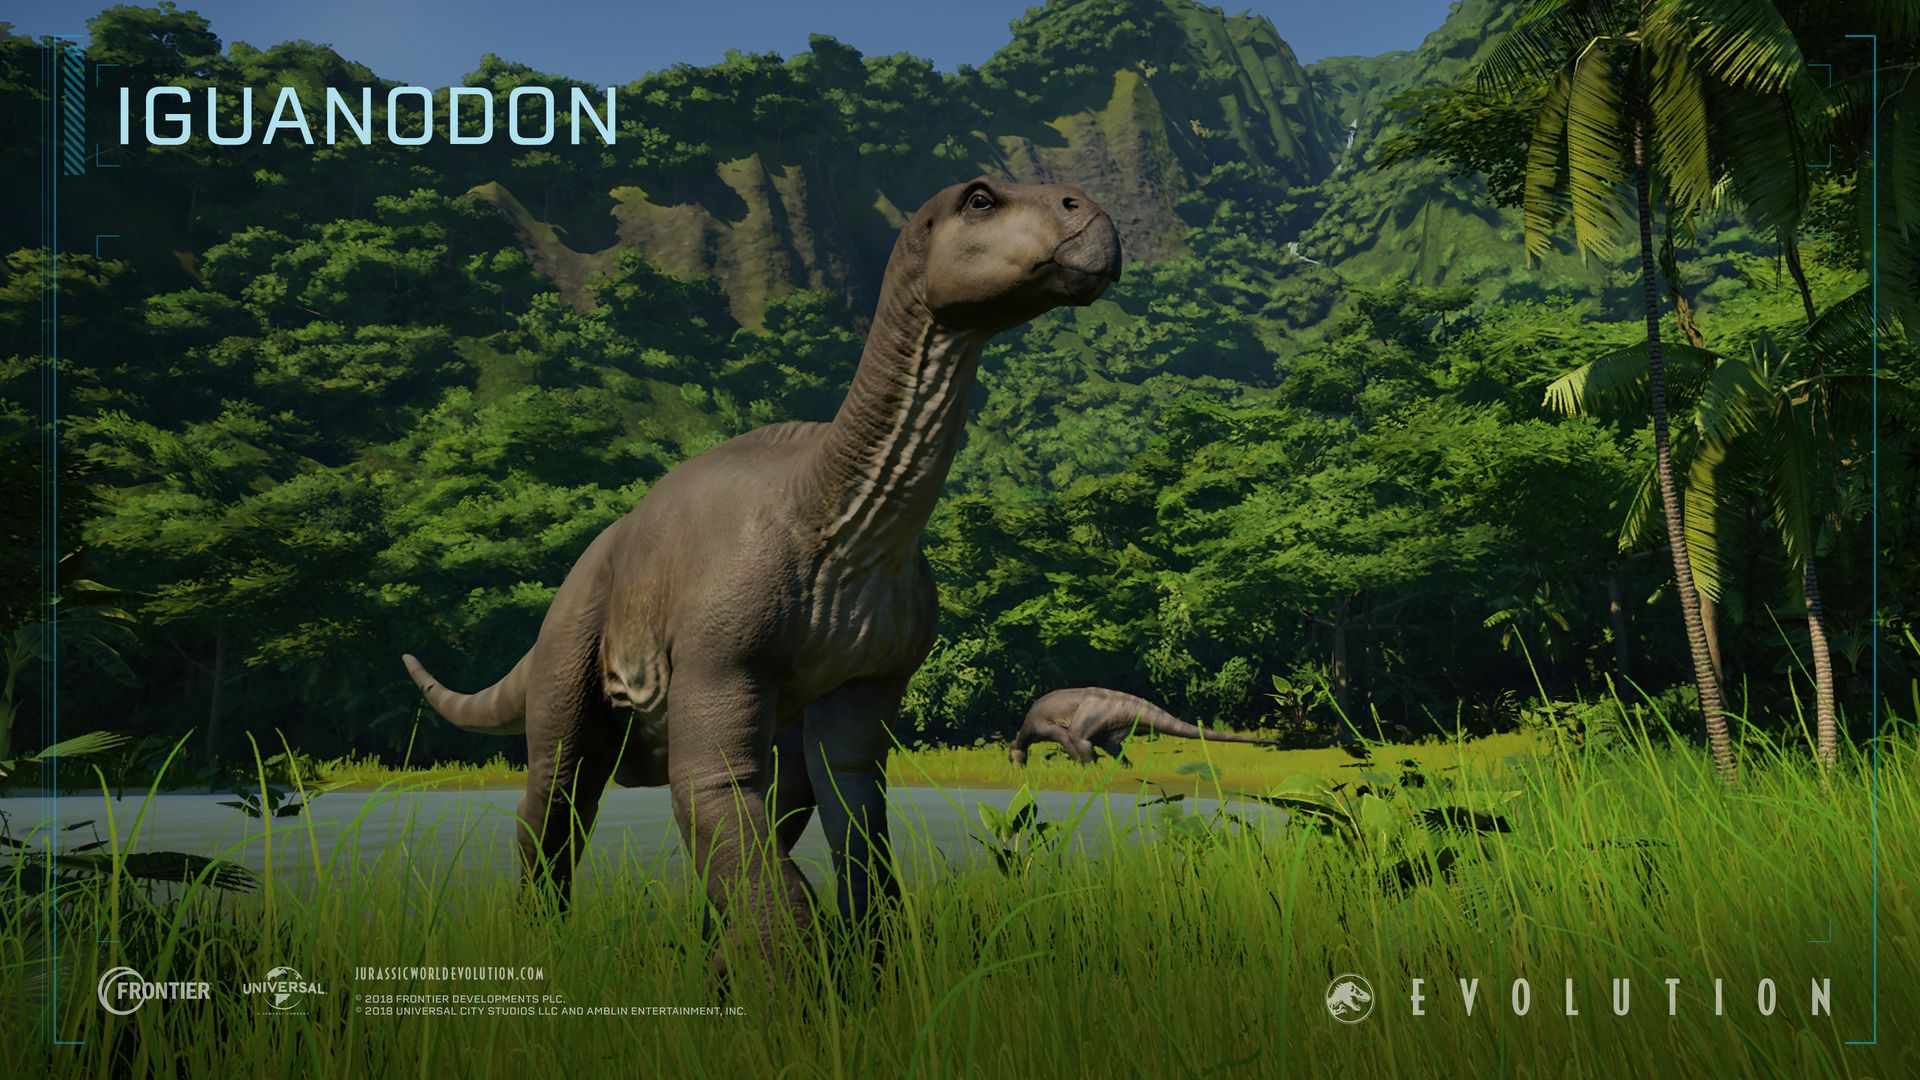 KHAiHOM.com - Jurassic World Evolution: Cretaceous Dinosaur Pack